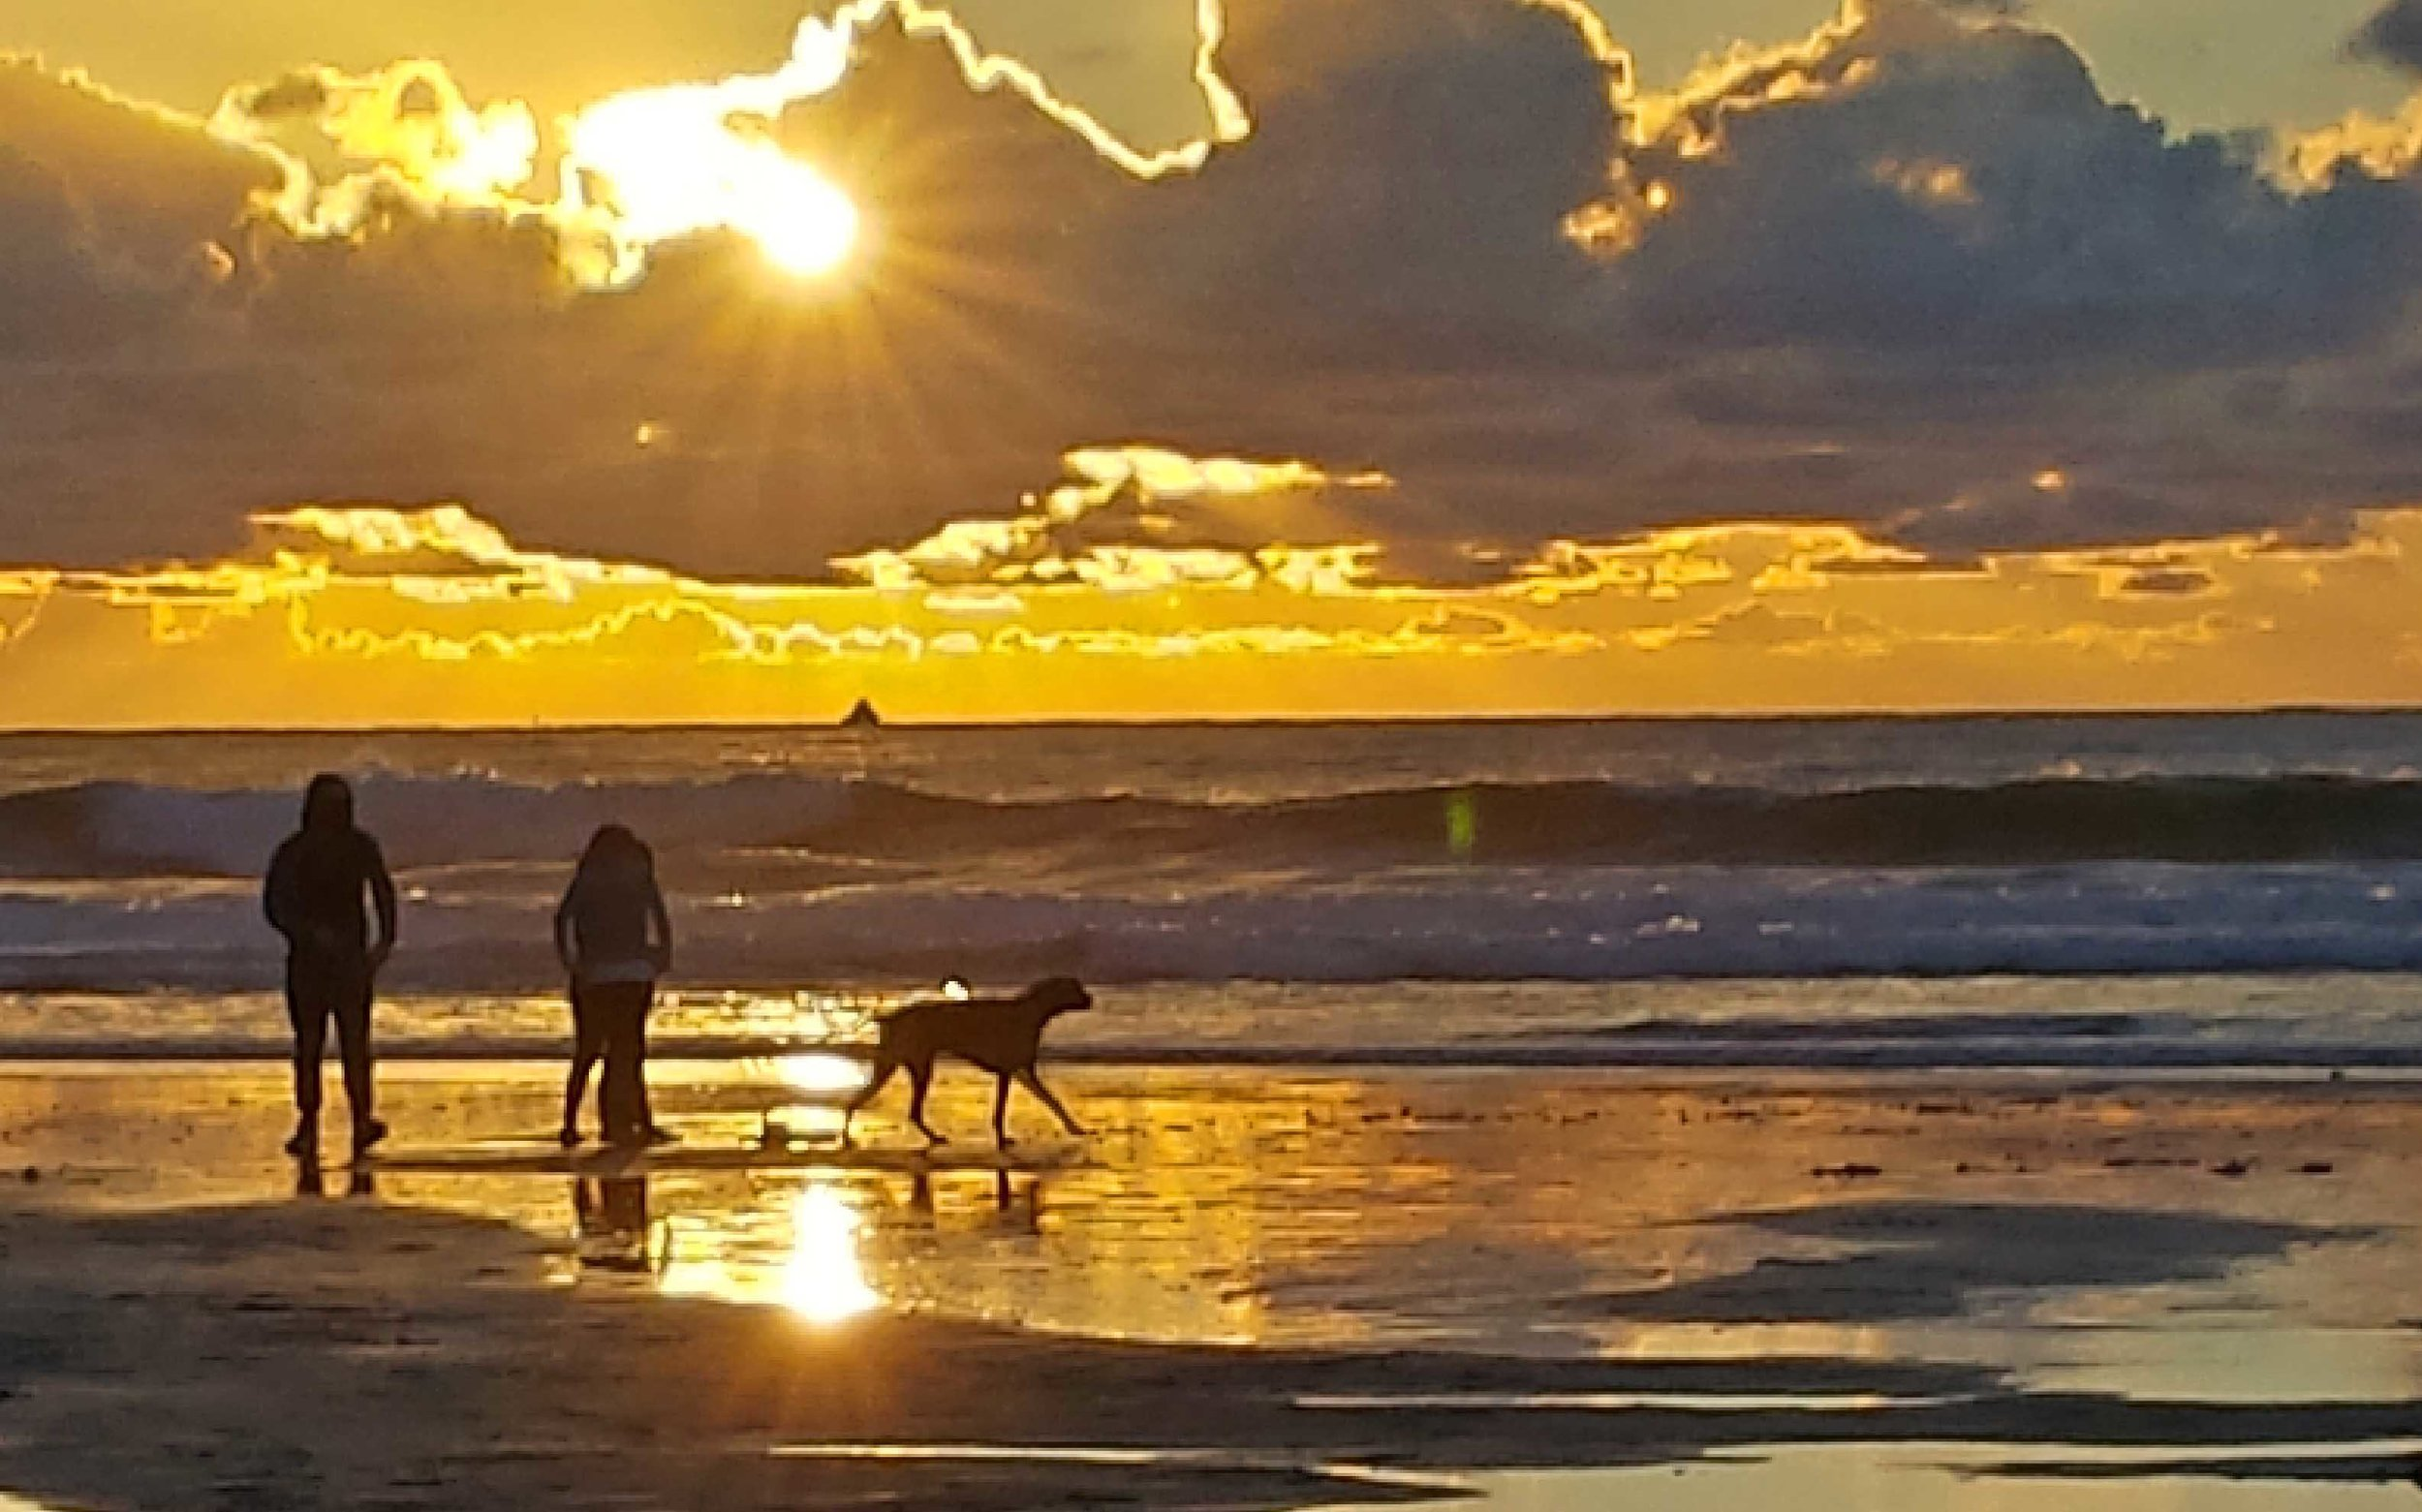 OB's Dog Beach. Wonderland for dogs and dog people - our home beach.    Photo: (c) Barb Ayers, DogDiary.org